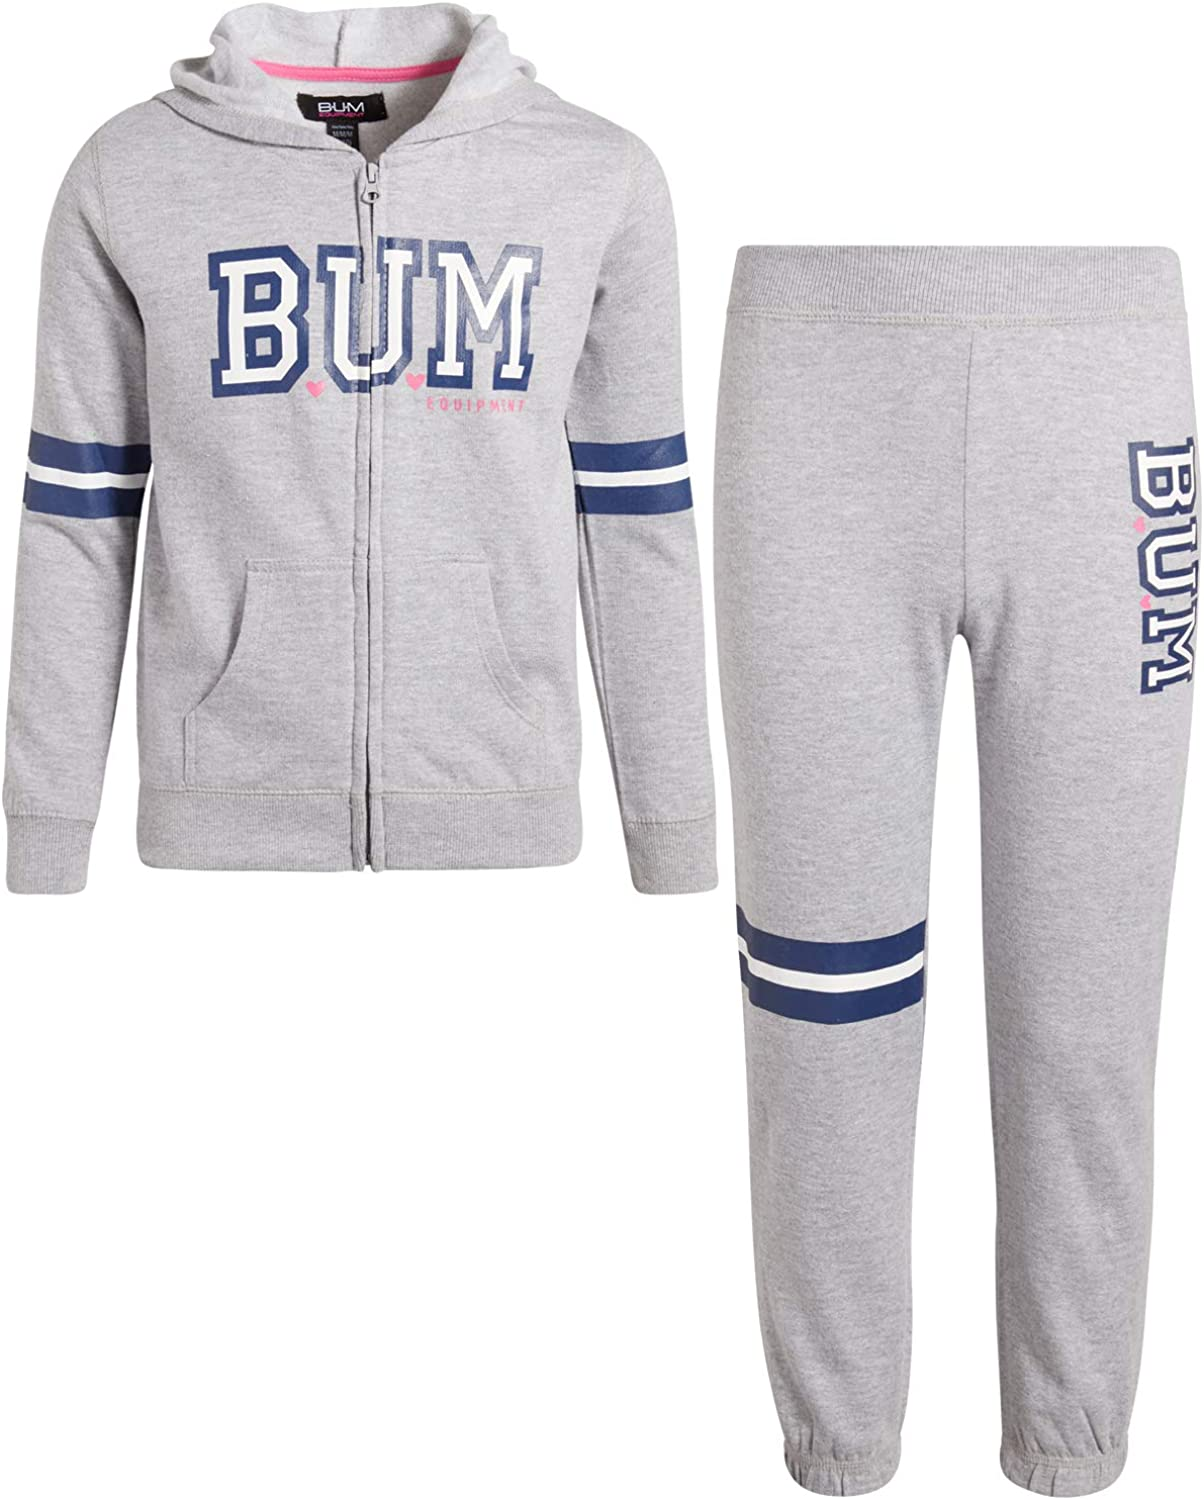 B.U.M Equipment Girls 2-Piece Athletic Jogger Pant Set with Zip Up Hoodie